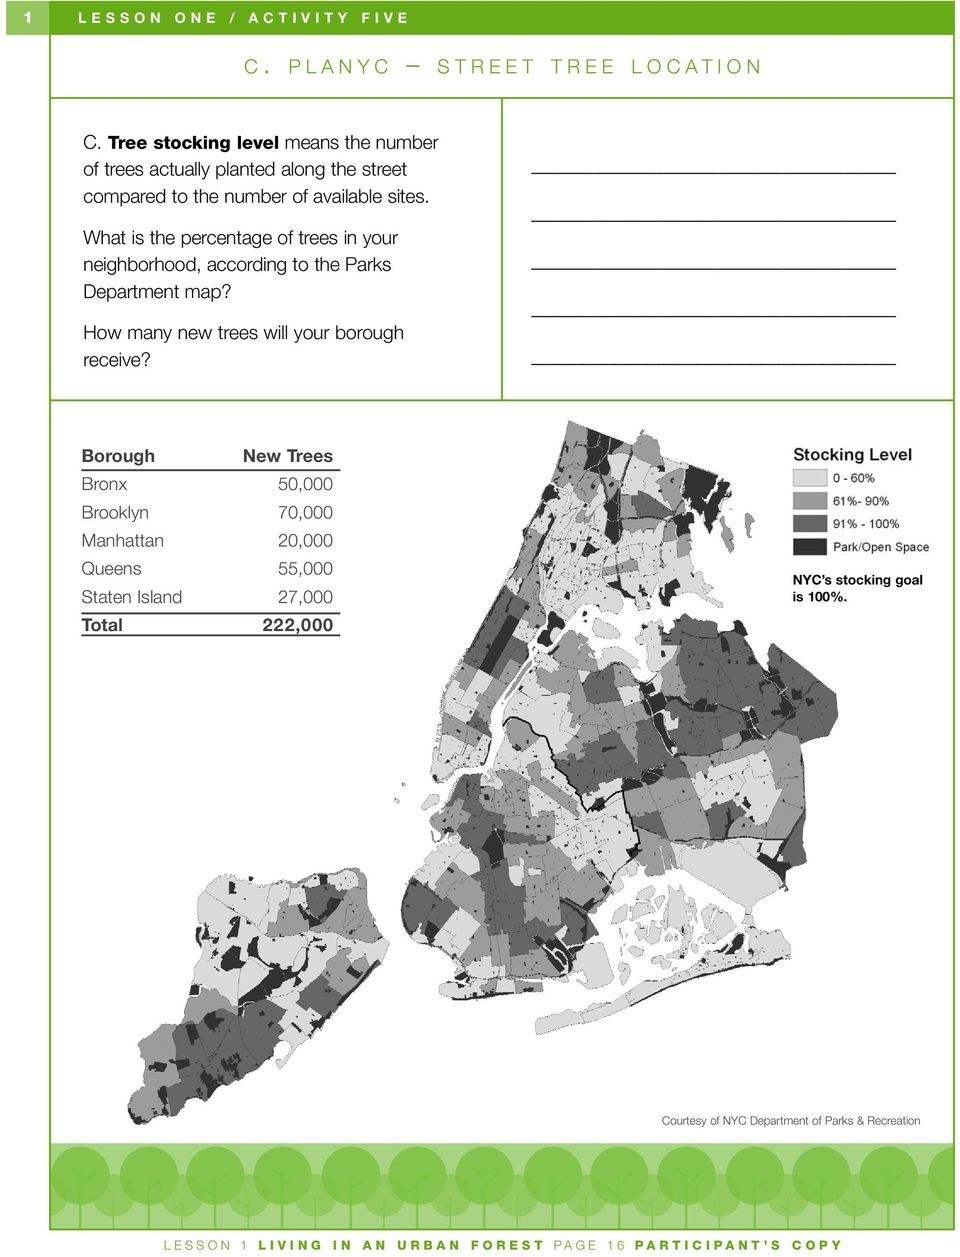 What is the percentage of trees in your neighborhood, according to the Parks Department map? How many new trees will your borough receive?